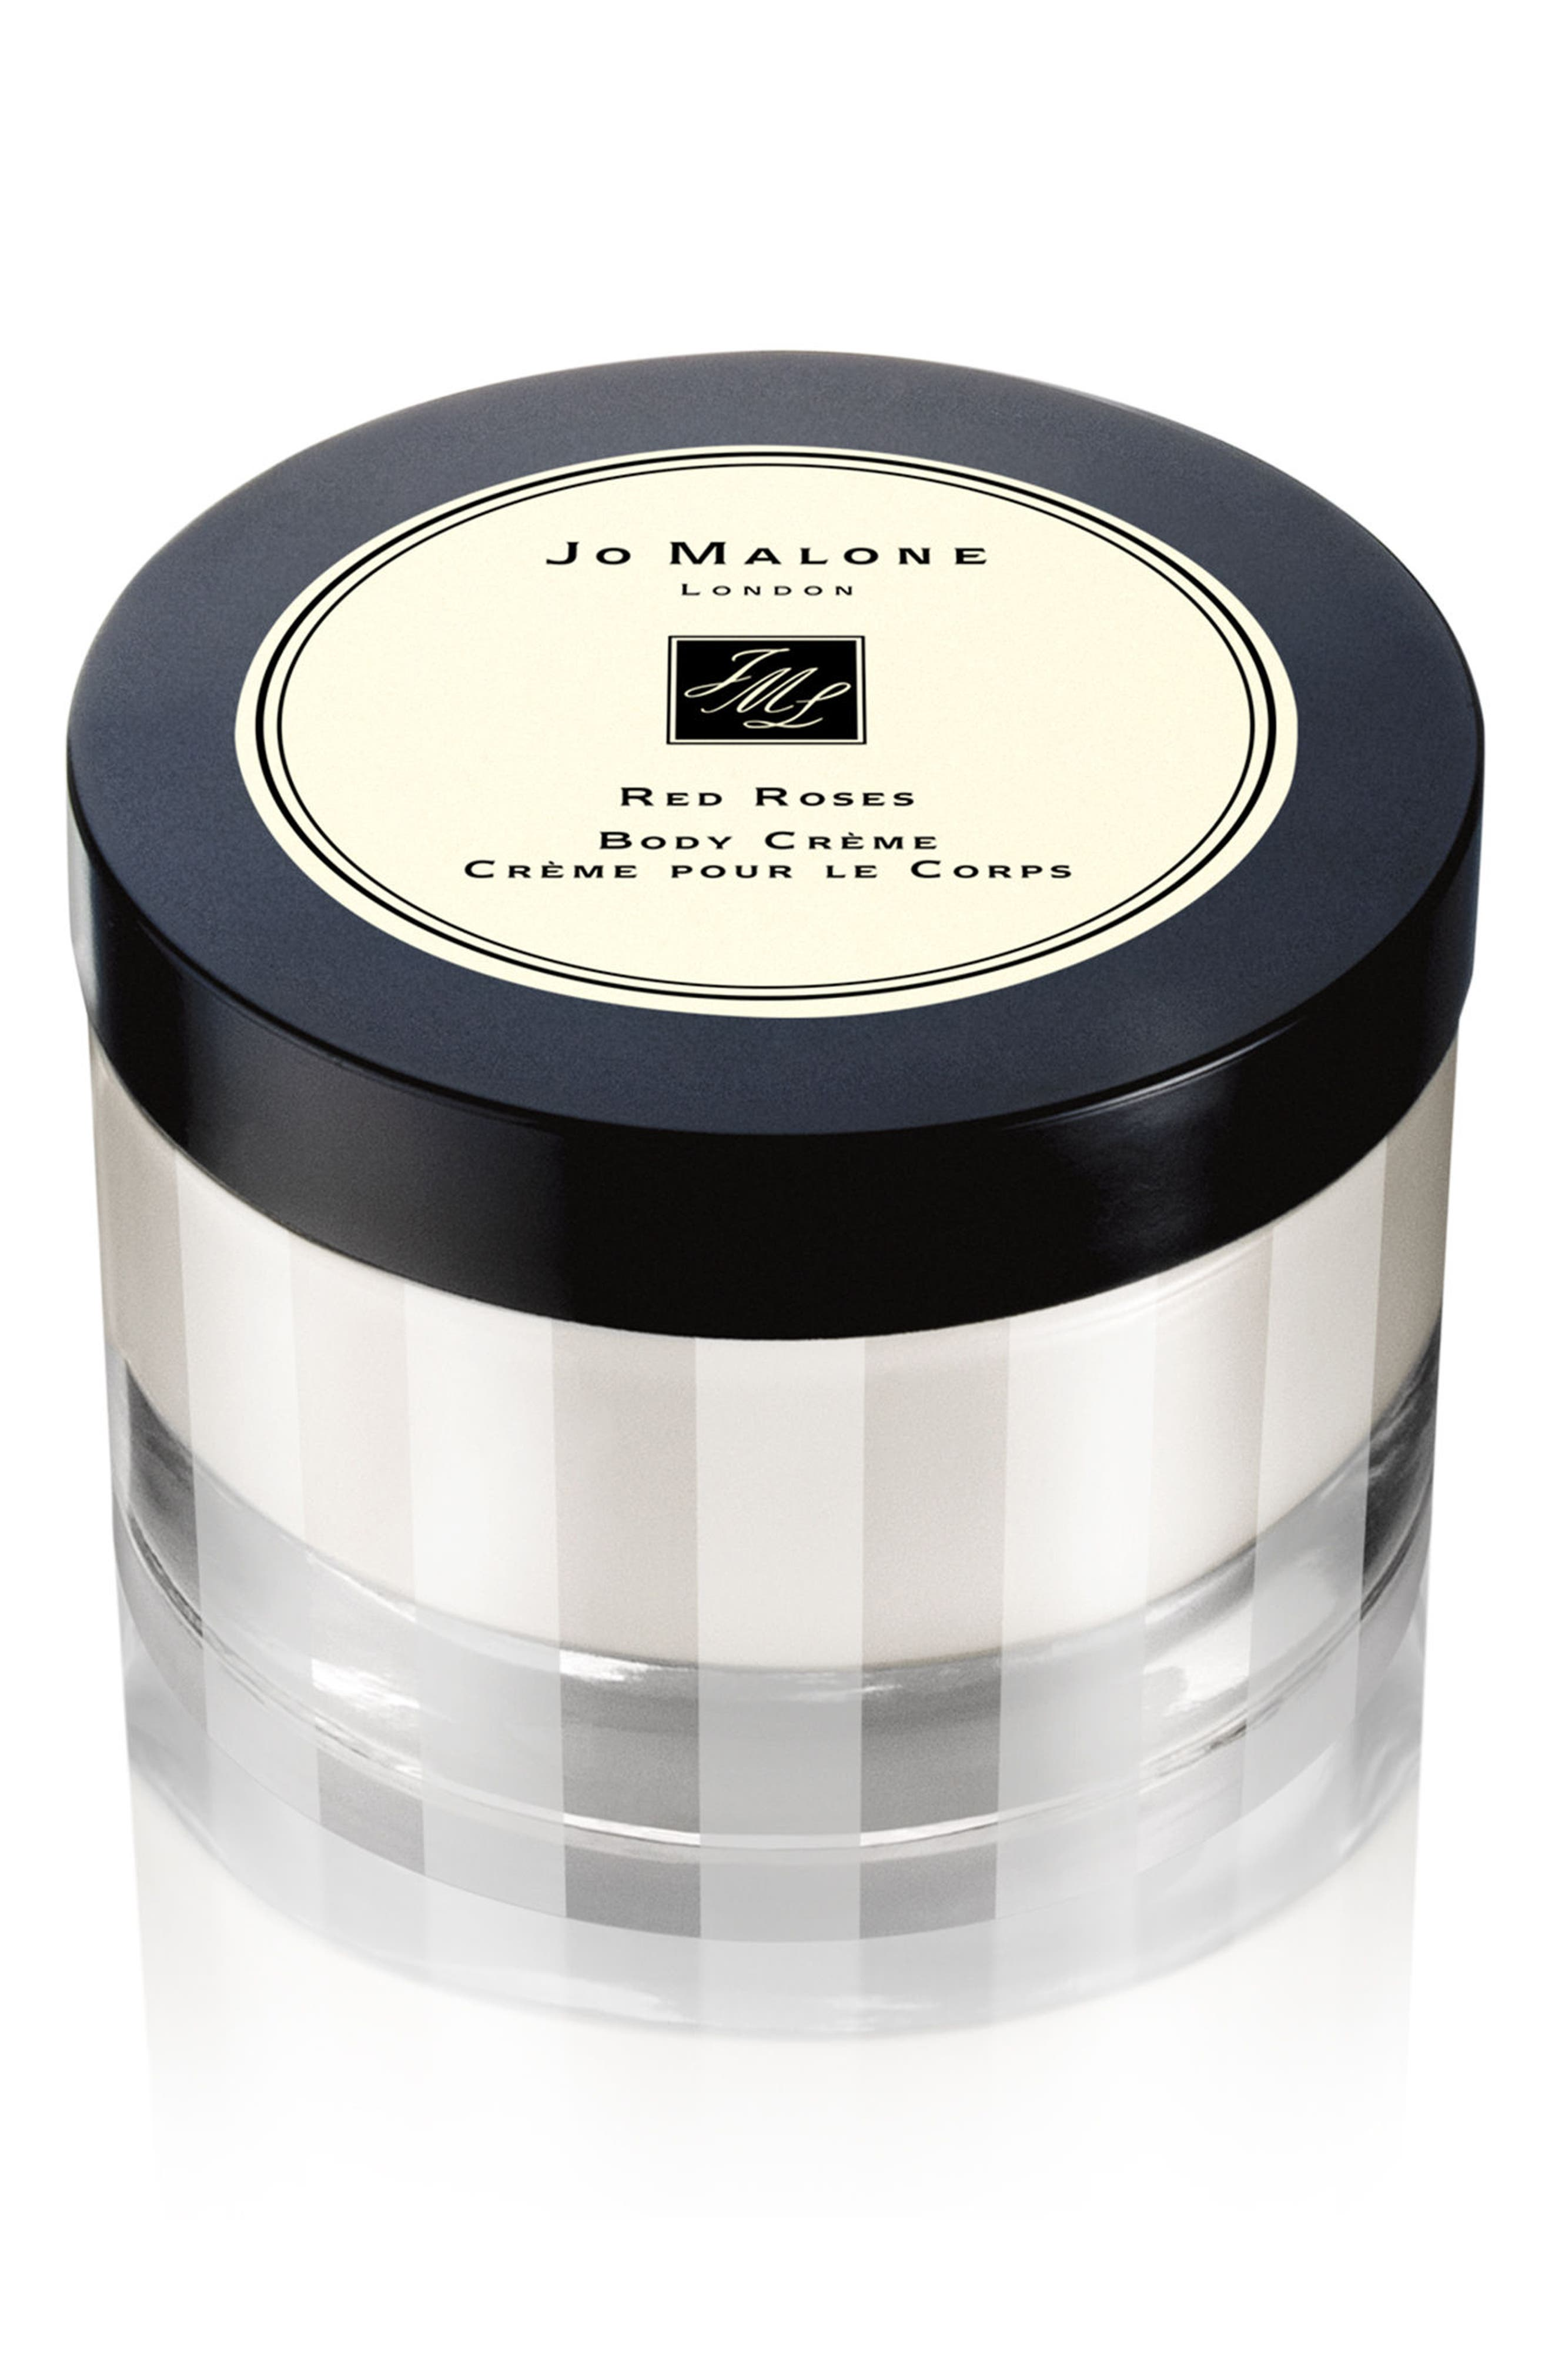 Jo Malone London™ Red Roses Body Crème